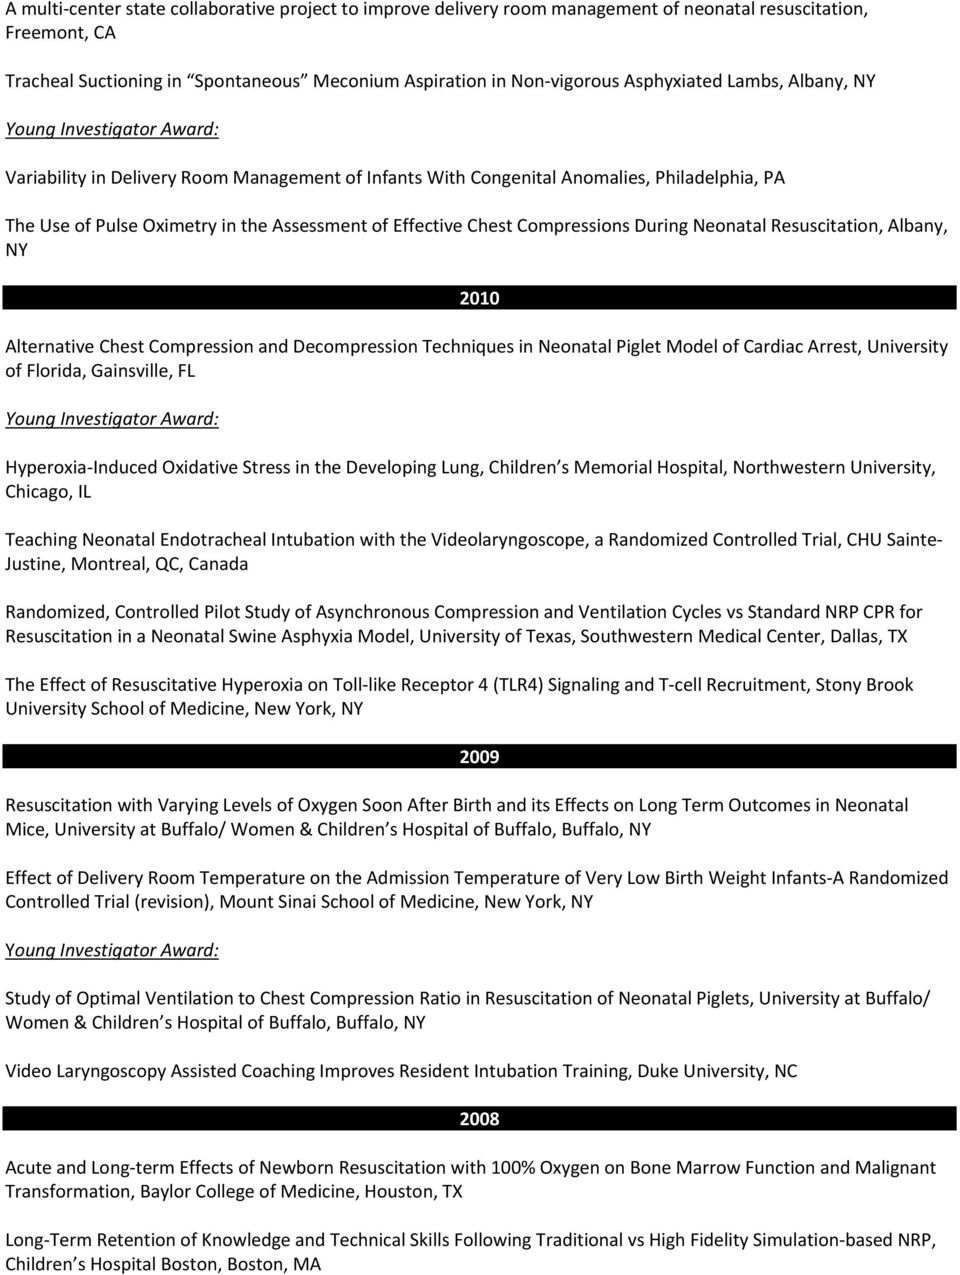 Approved and funded neonatal resuscitation program nrp research compressions during neonatal resuscitation albany ny 2010 alternative chest compression and decompression techniques in fandeluxe Images